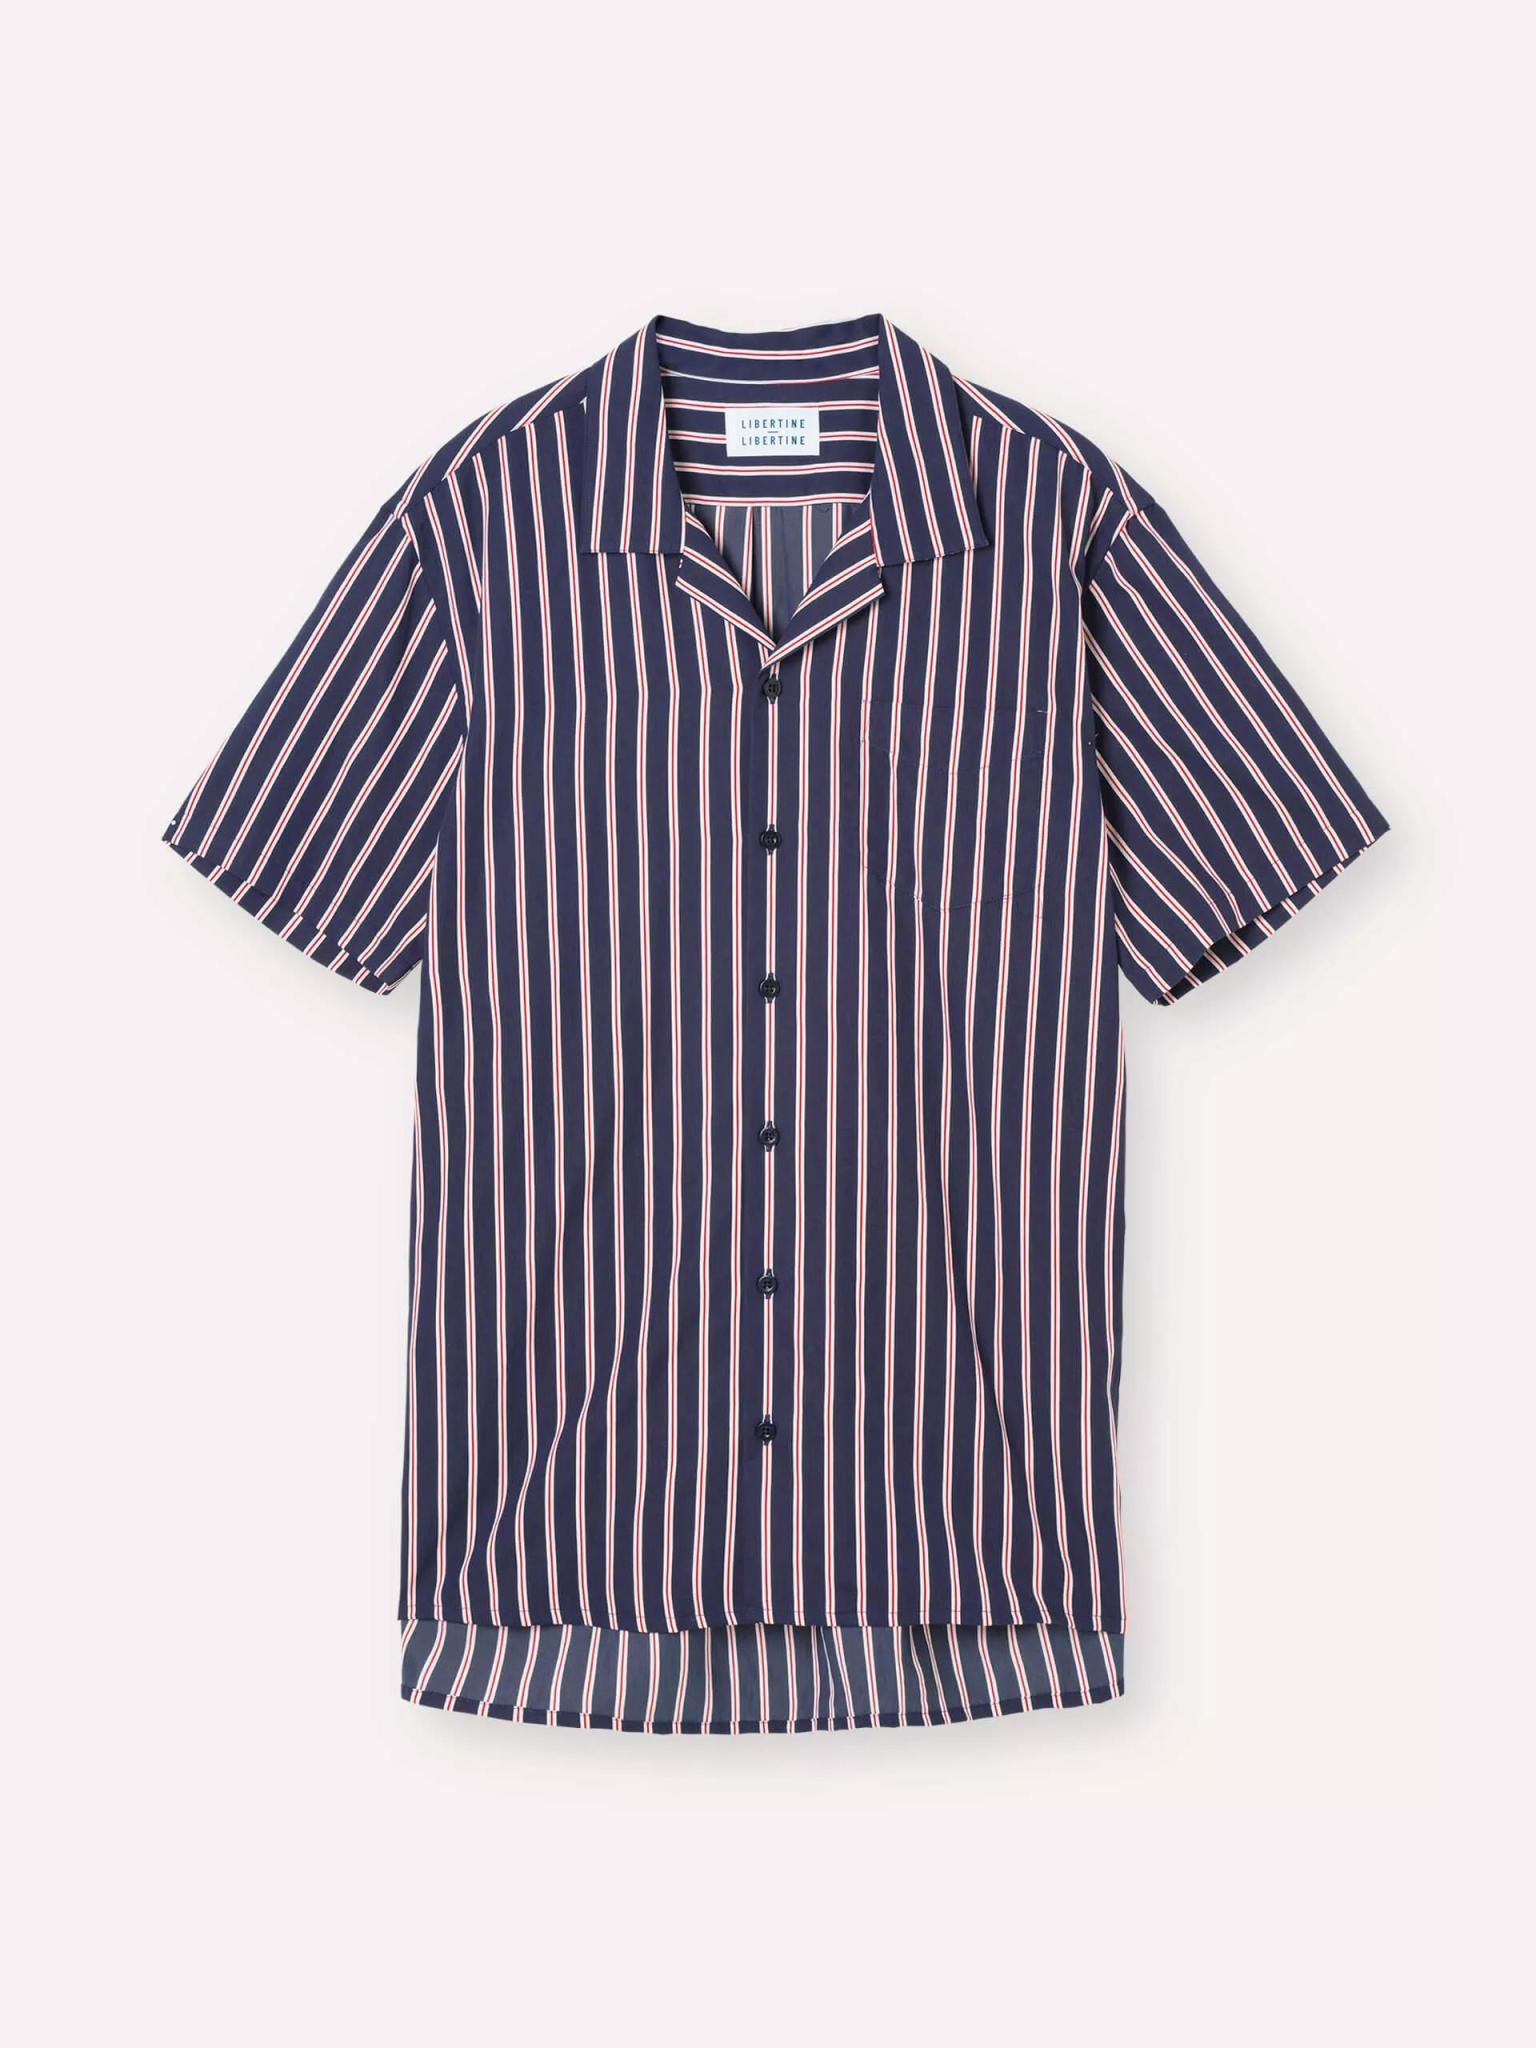 Cave Short Sleeve Navy Red Striped Shirt-1